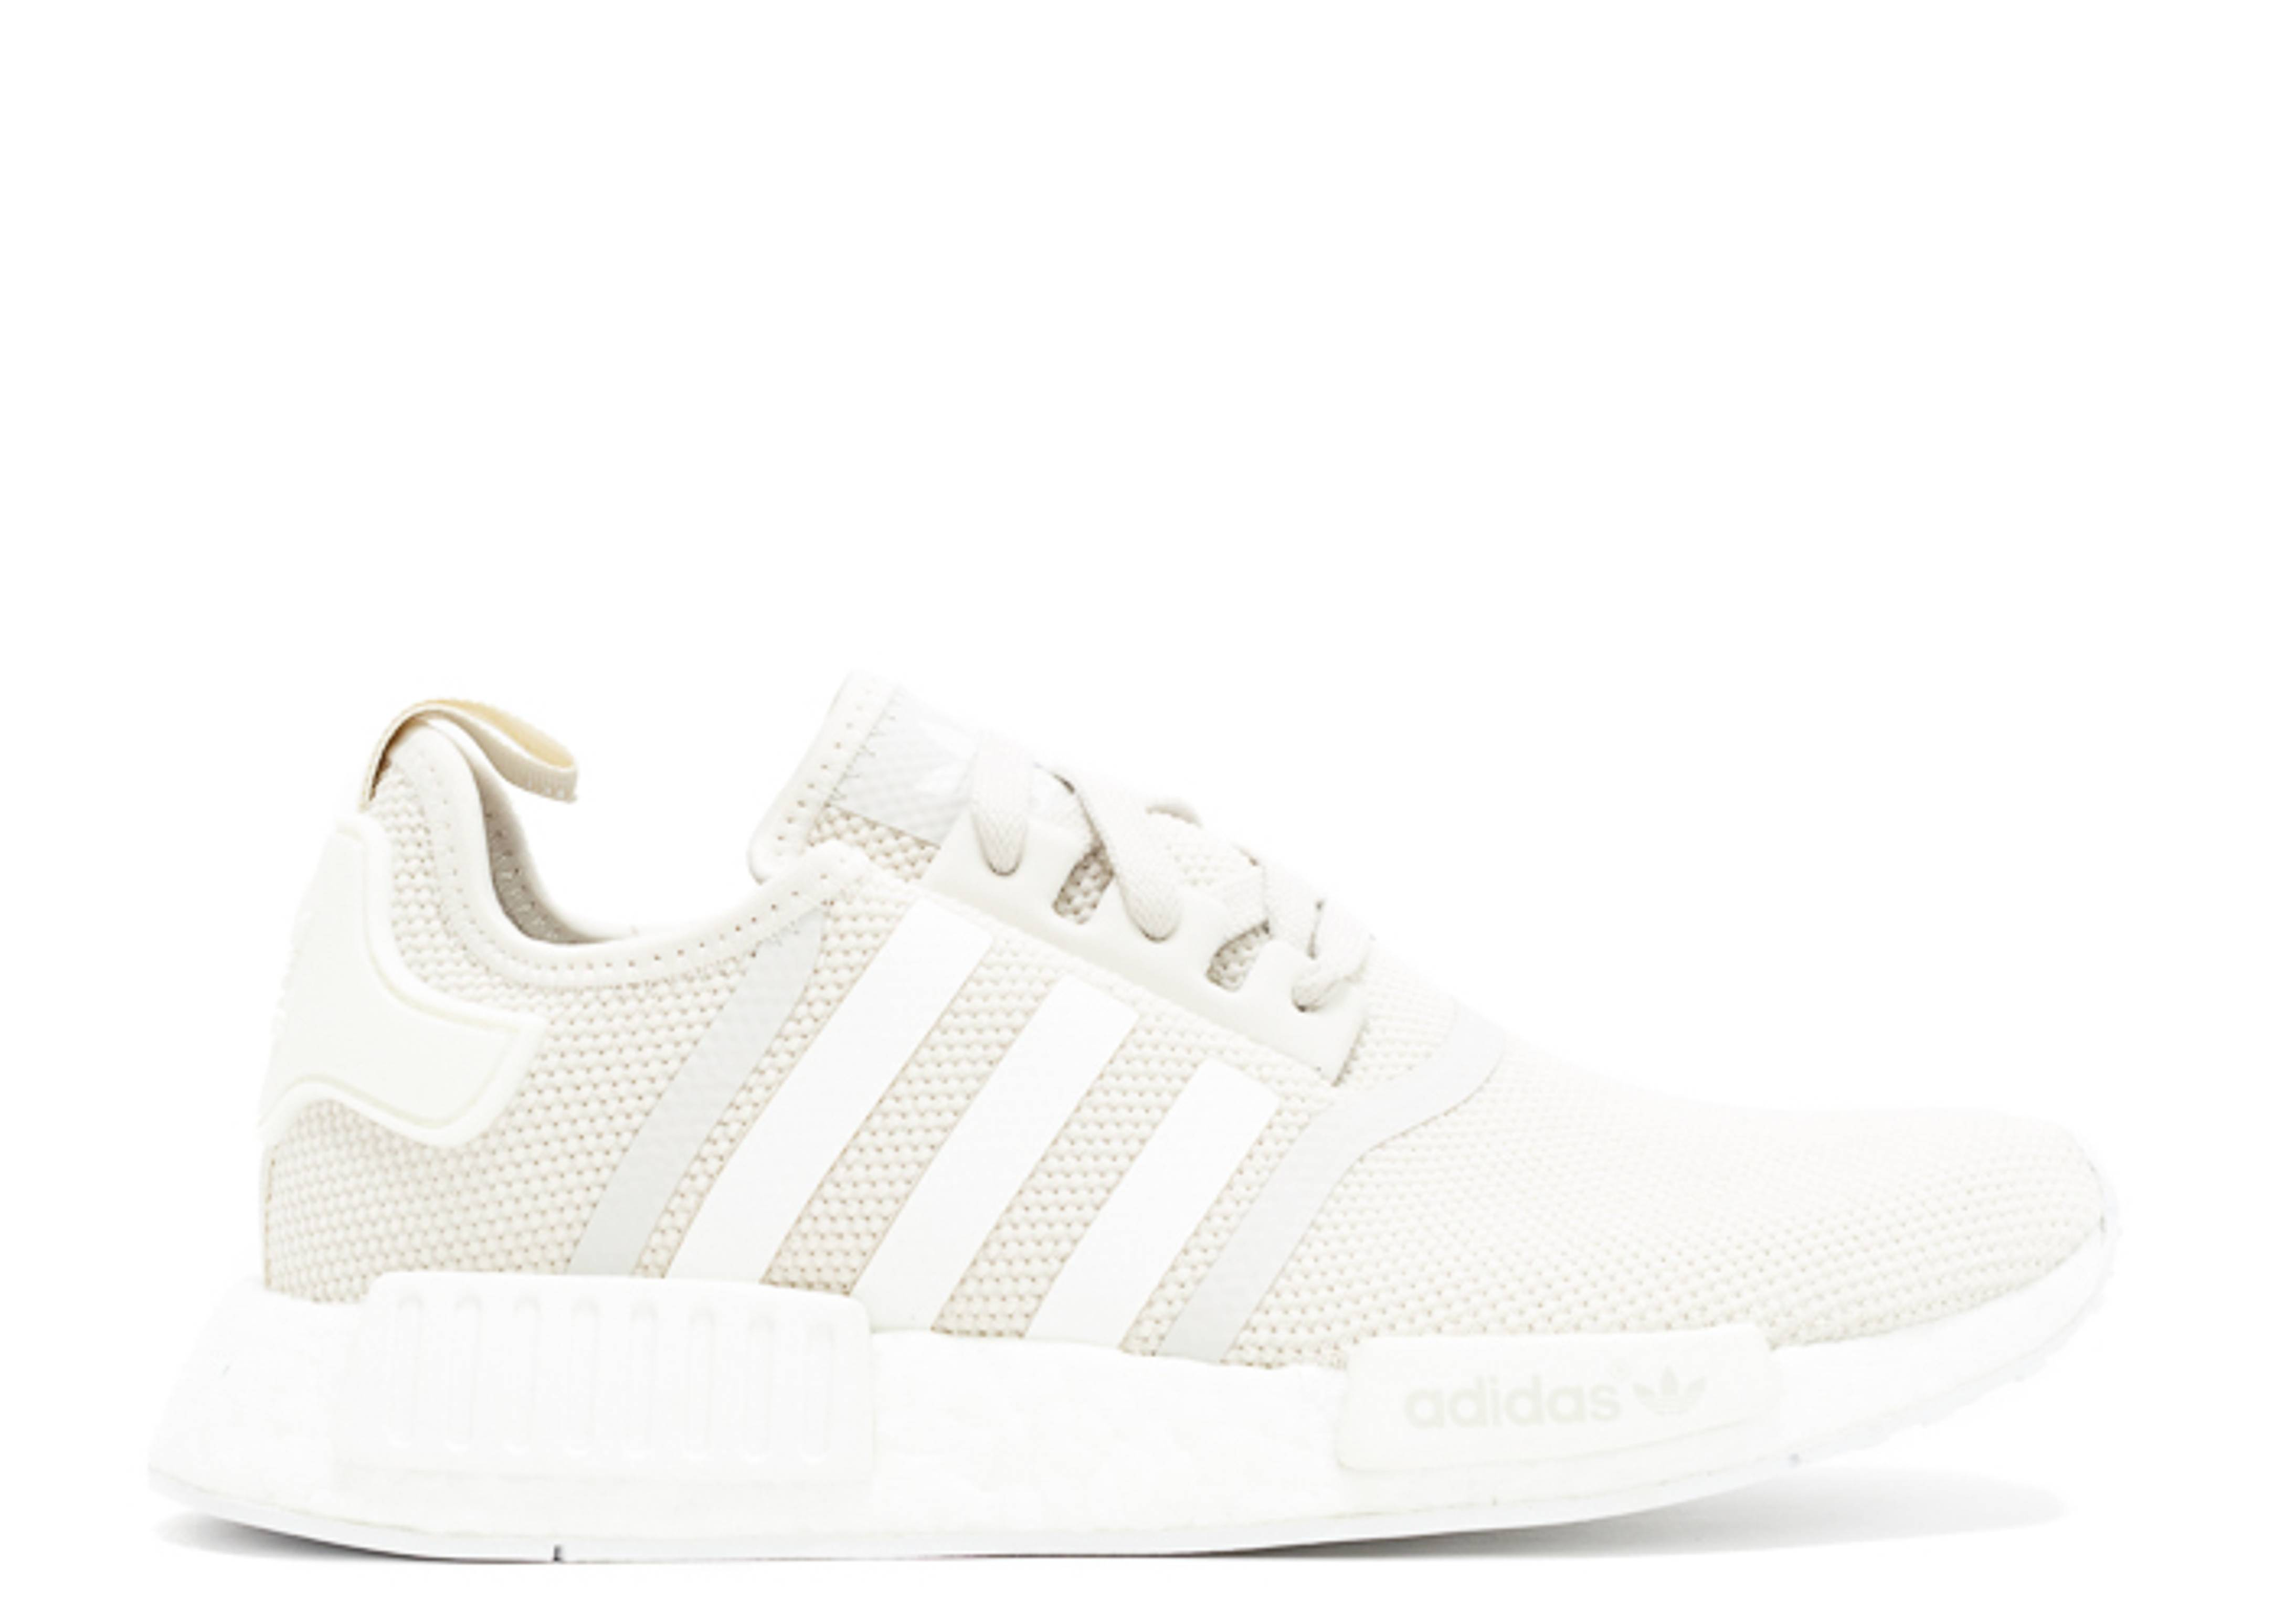 nmd r1 w adidas s76007 beige beige white flight club. Black Bedroom Furniture Sets. Home Design Ideas